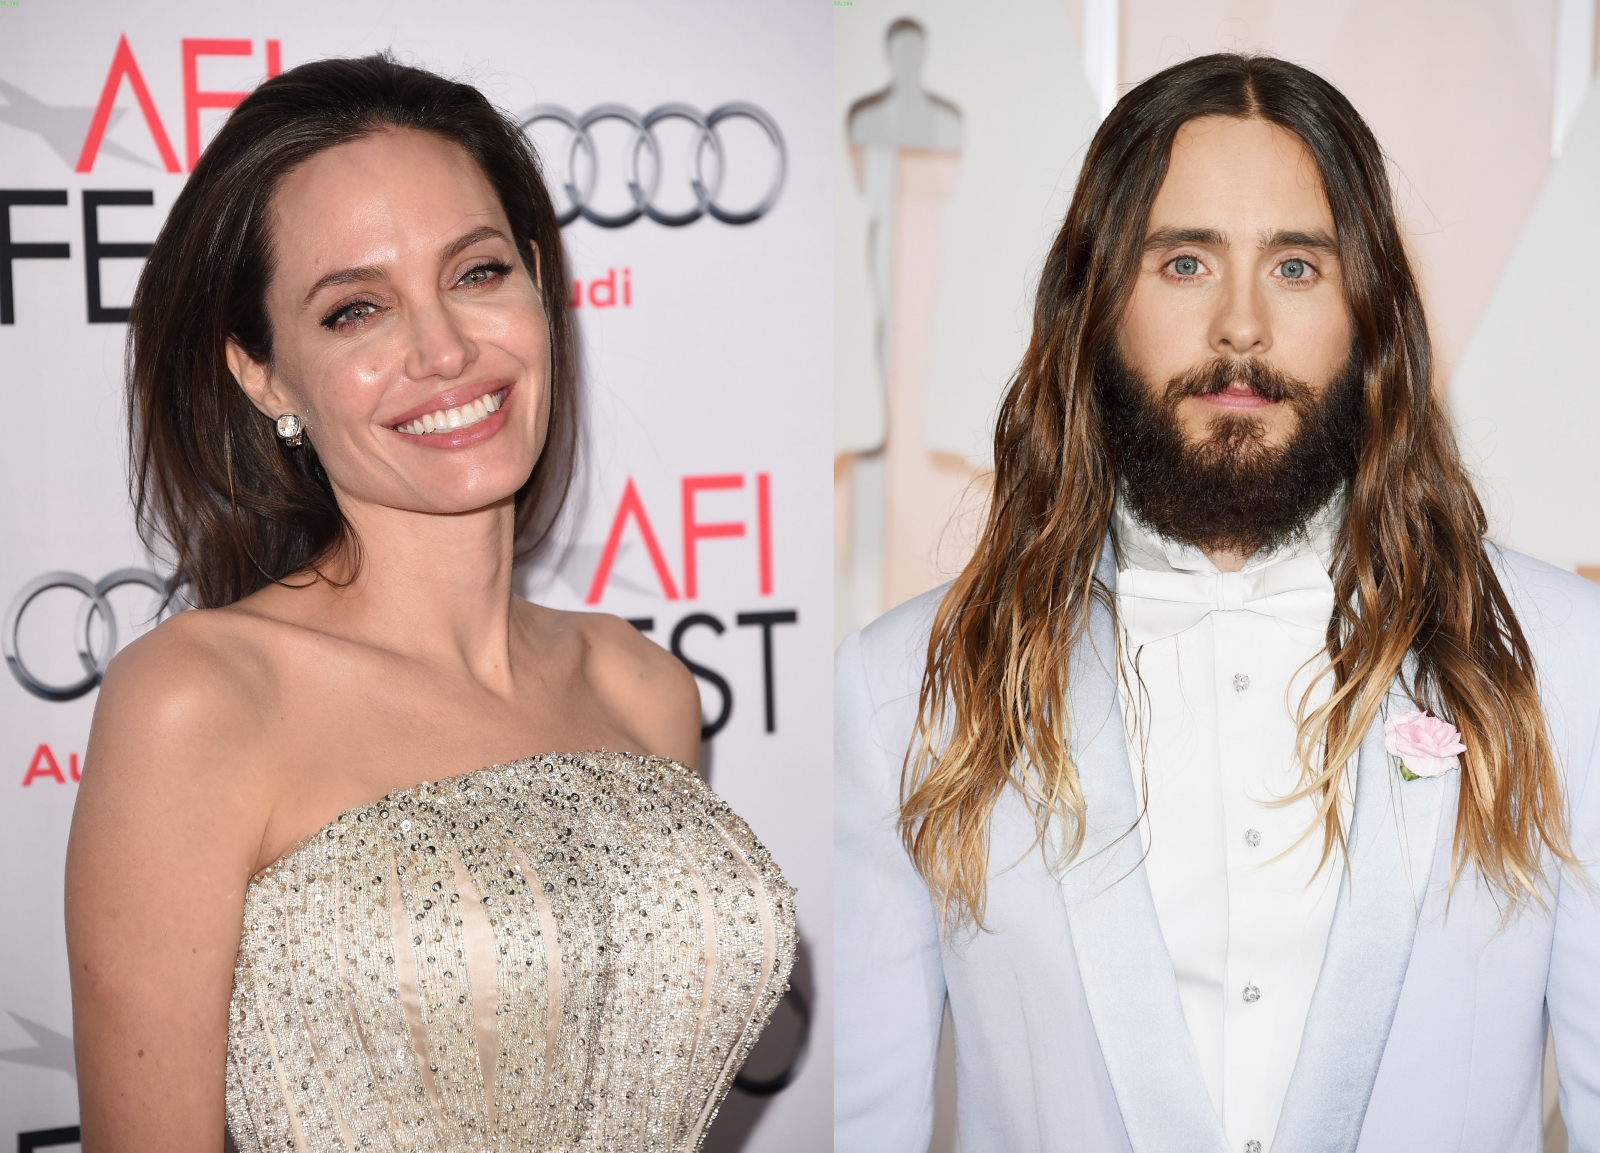 Angelina Jolie and Jared Leto